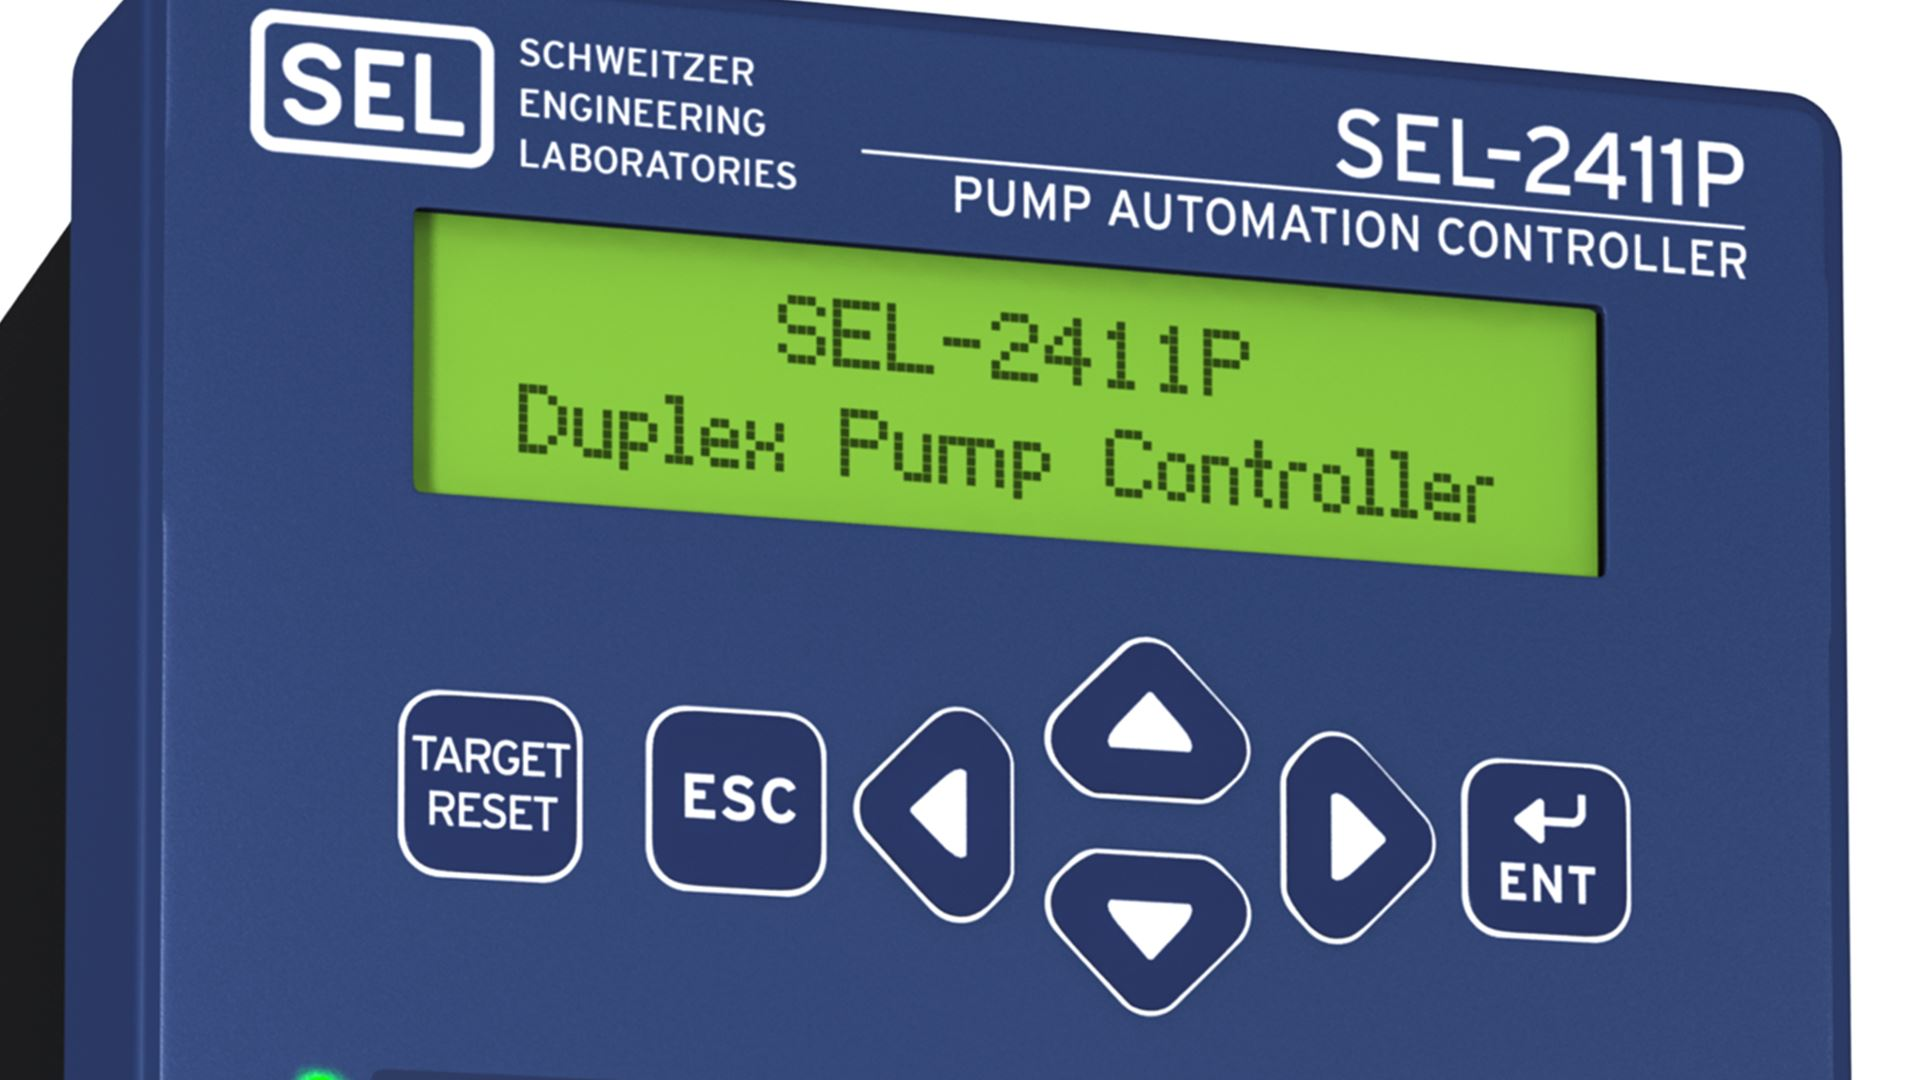 small resolution of sel 2411p pump automation controller schweitzer engineering laboratories